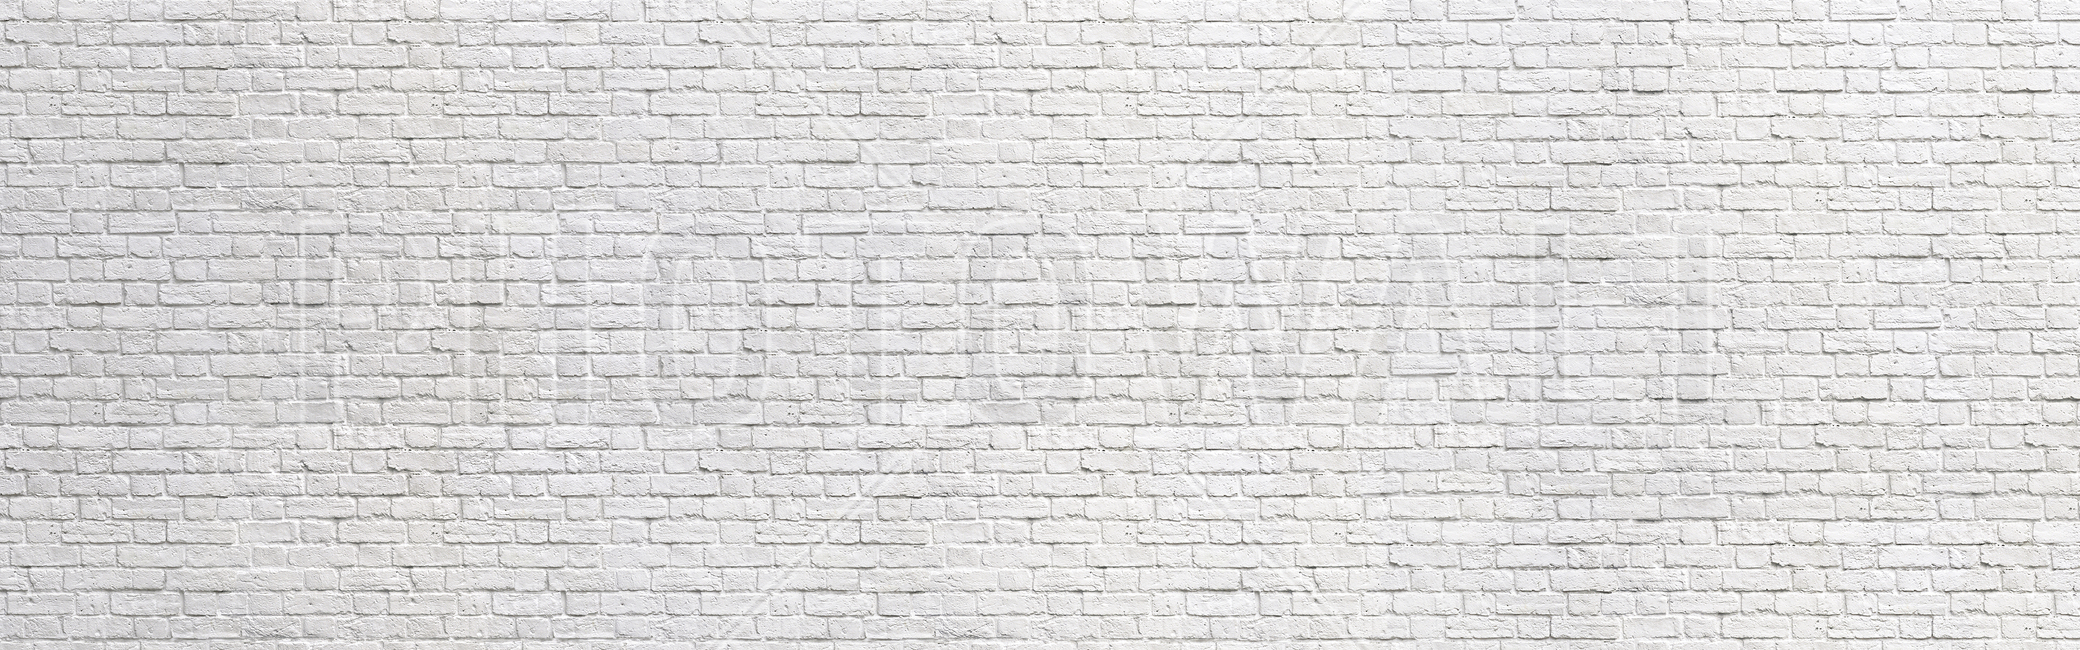 Brick Wall - White